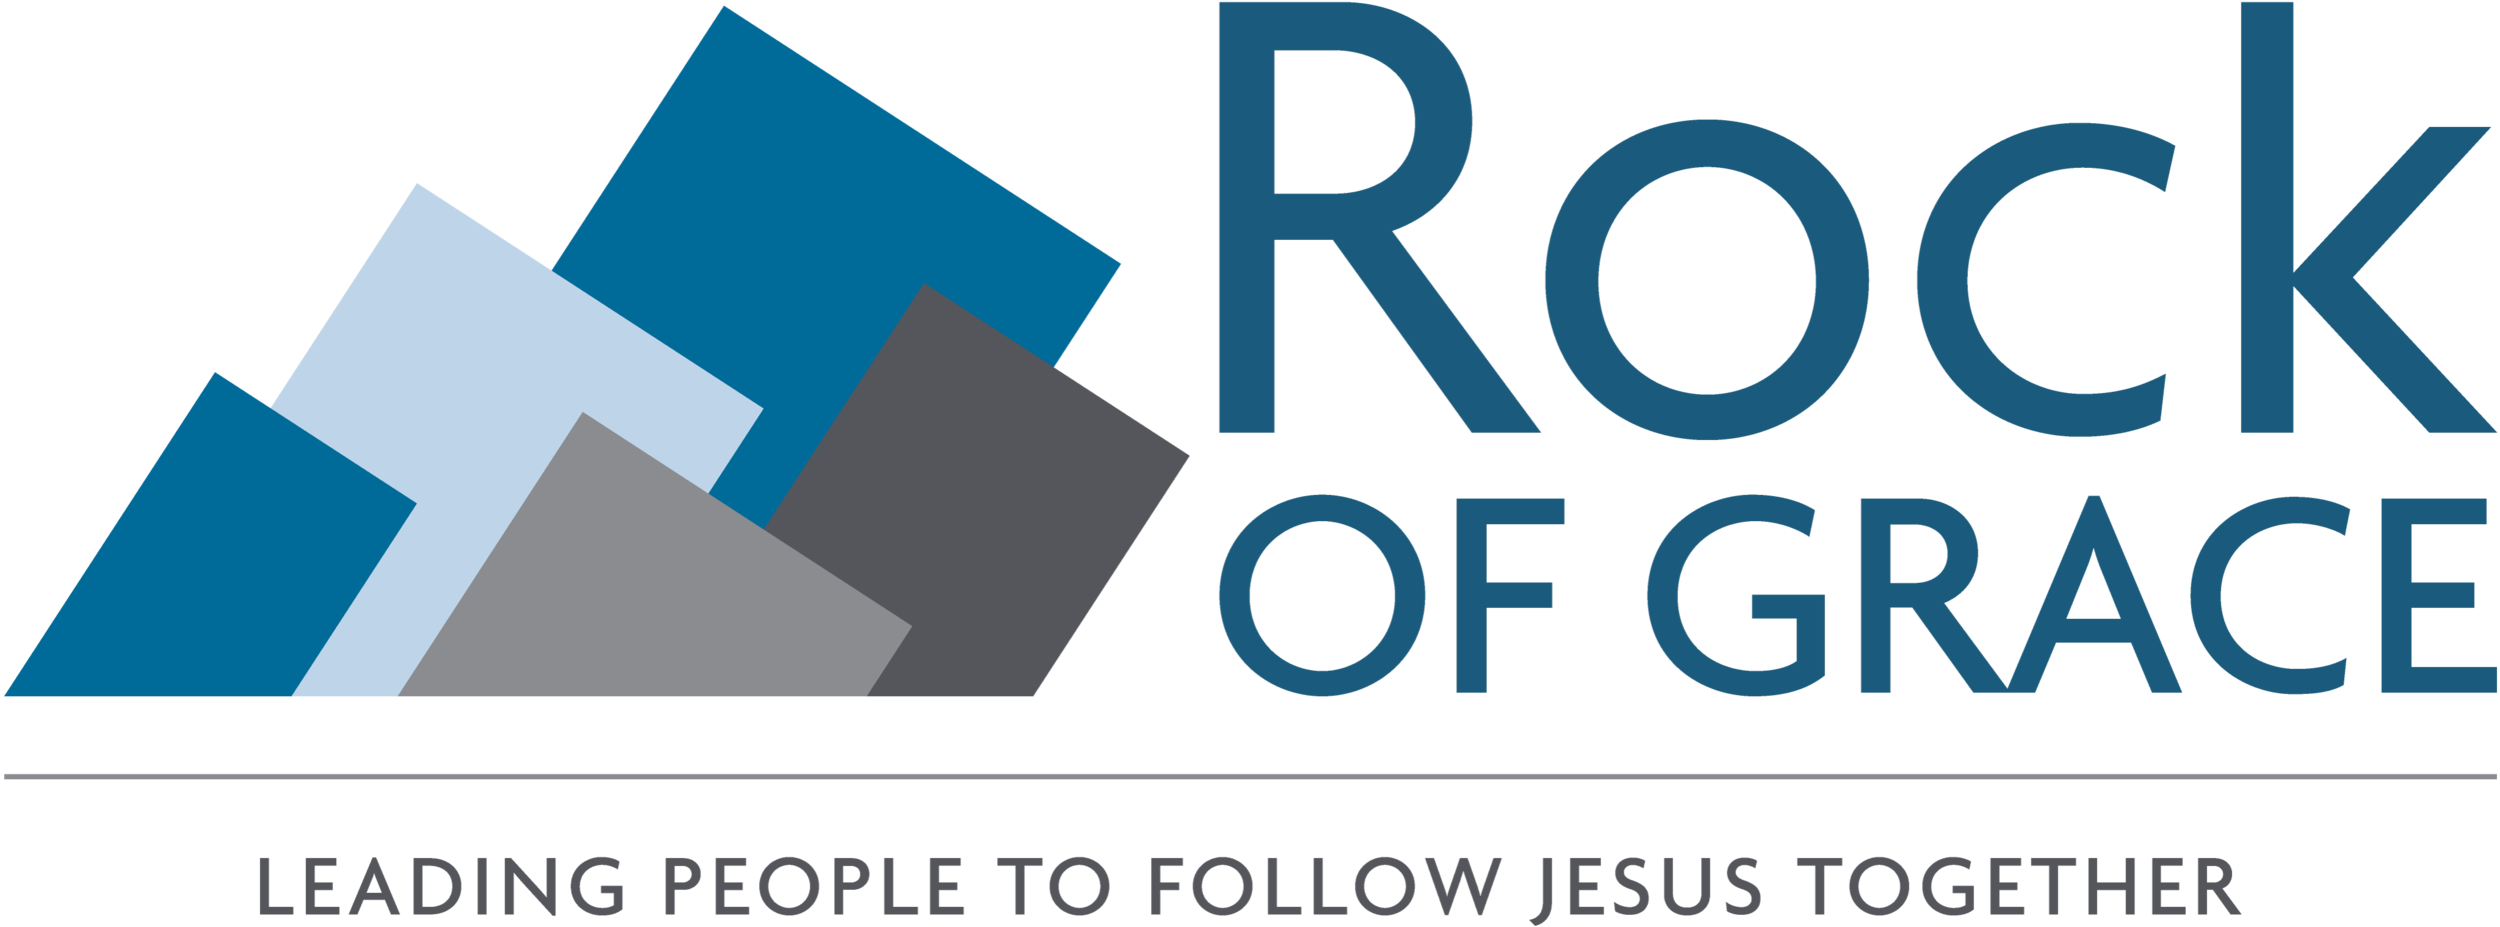 Rock-of-Grace-Logo+Tag-Line-onscreen.png